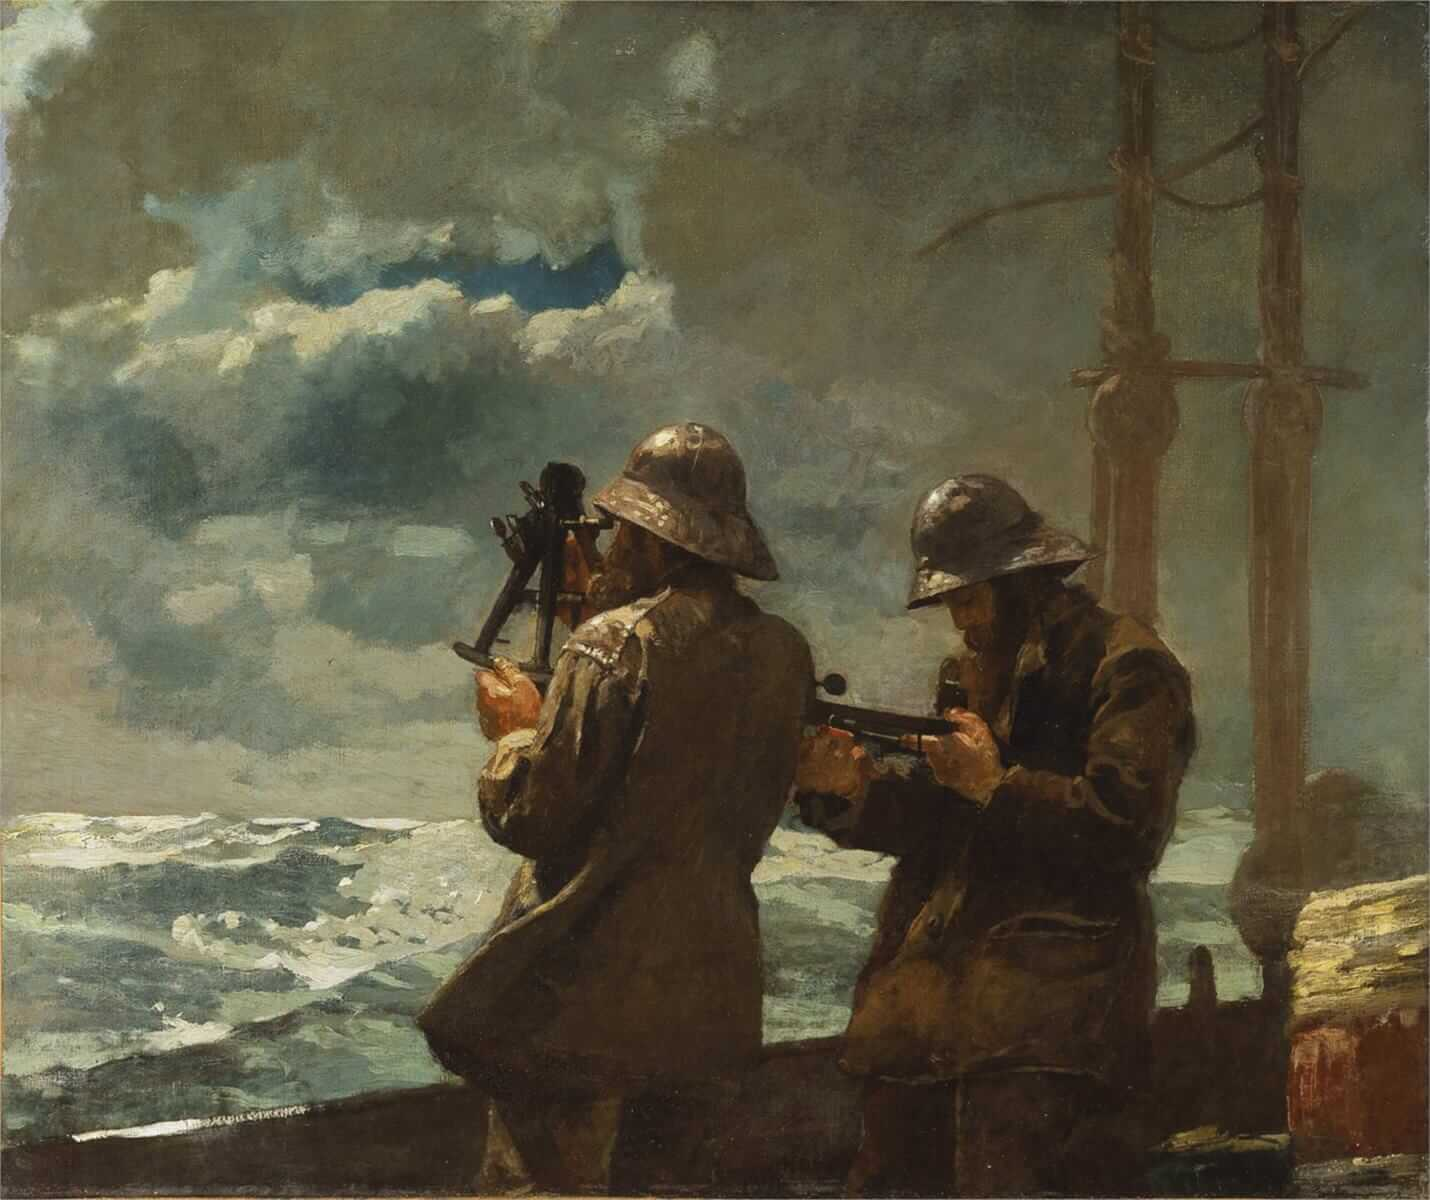 Eight Bells, 1887 by Winslow Homer